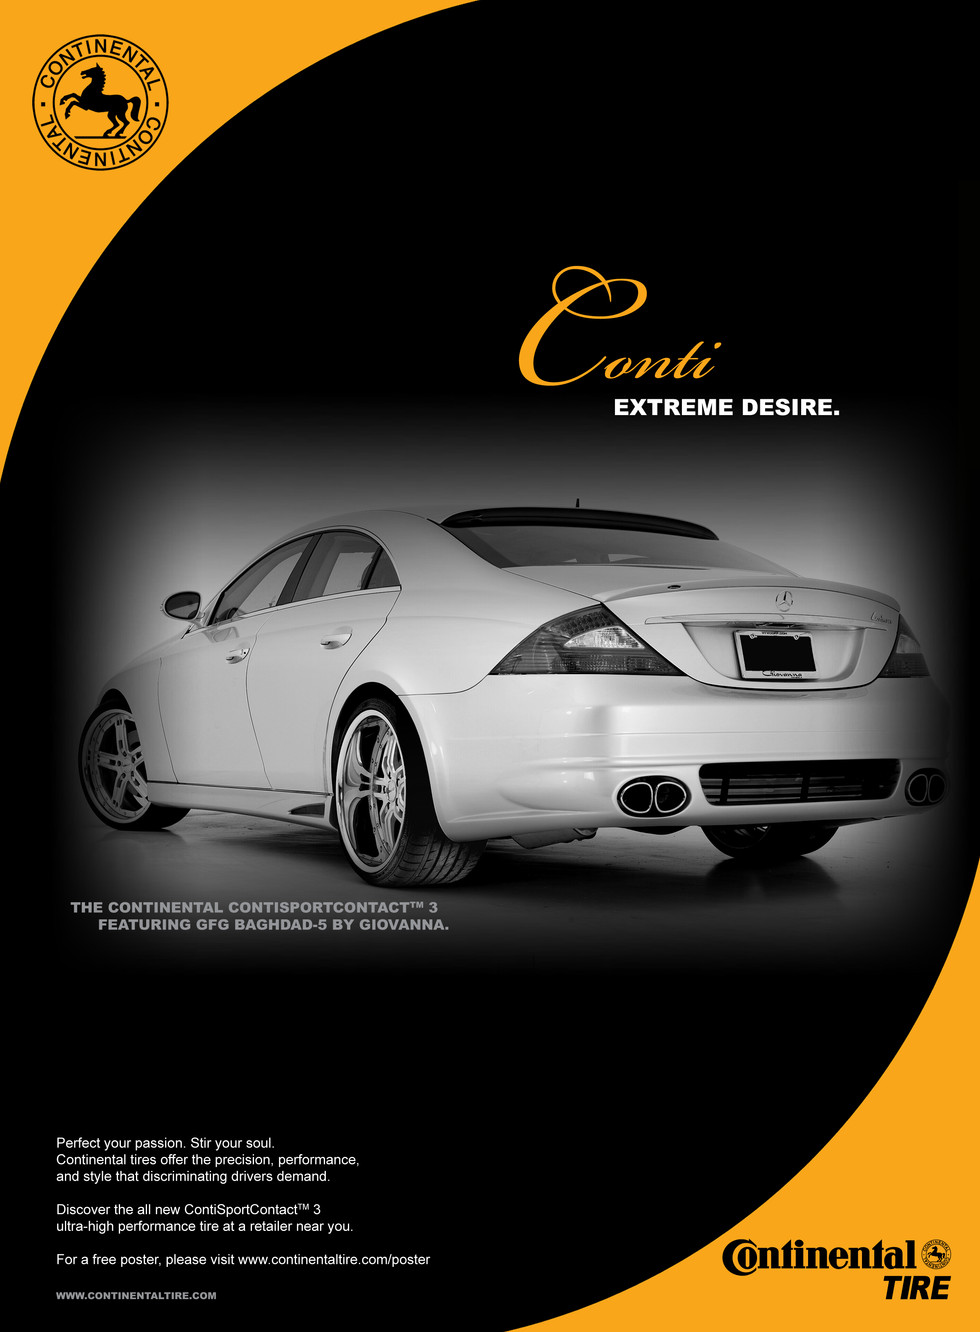 Continental_extremedesire_CSC3_EuroCar c